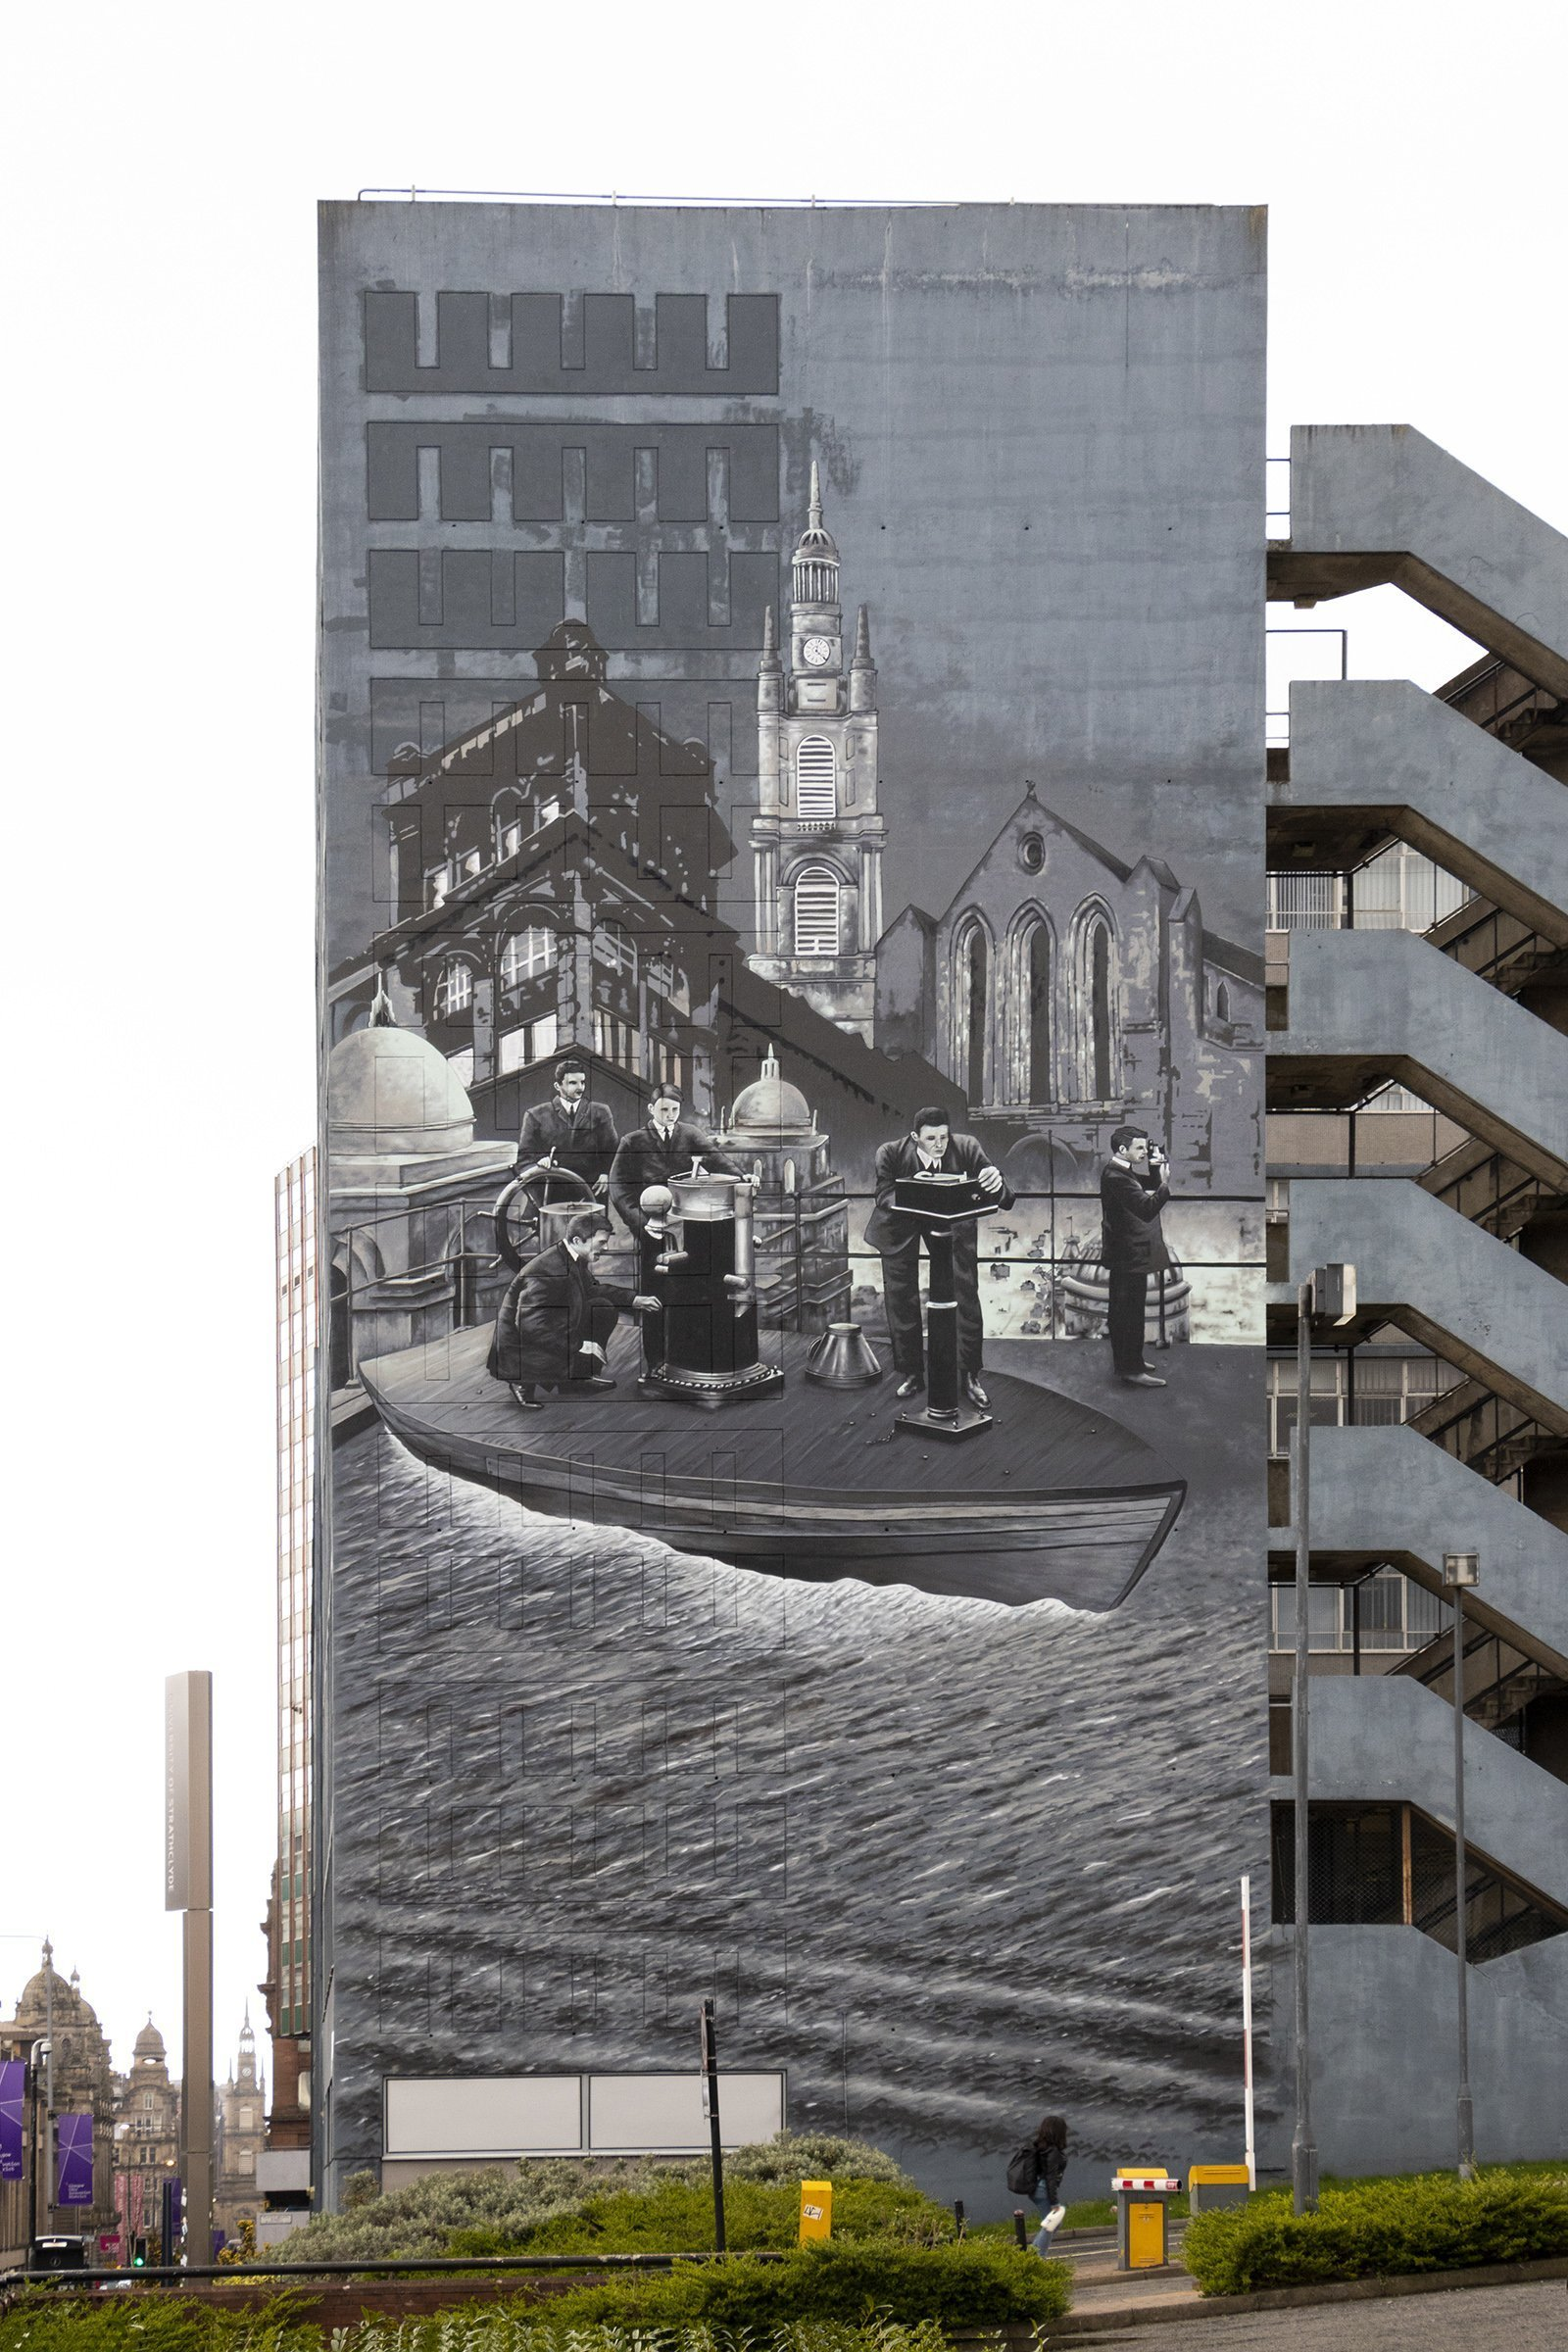 Strathclyde University mural building - Glasgow mural trail